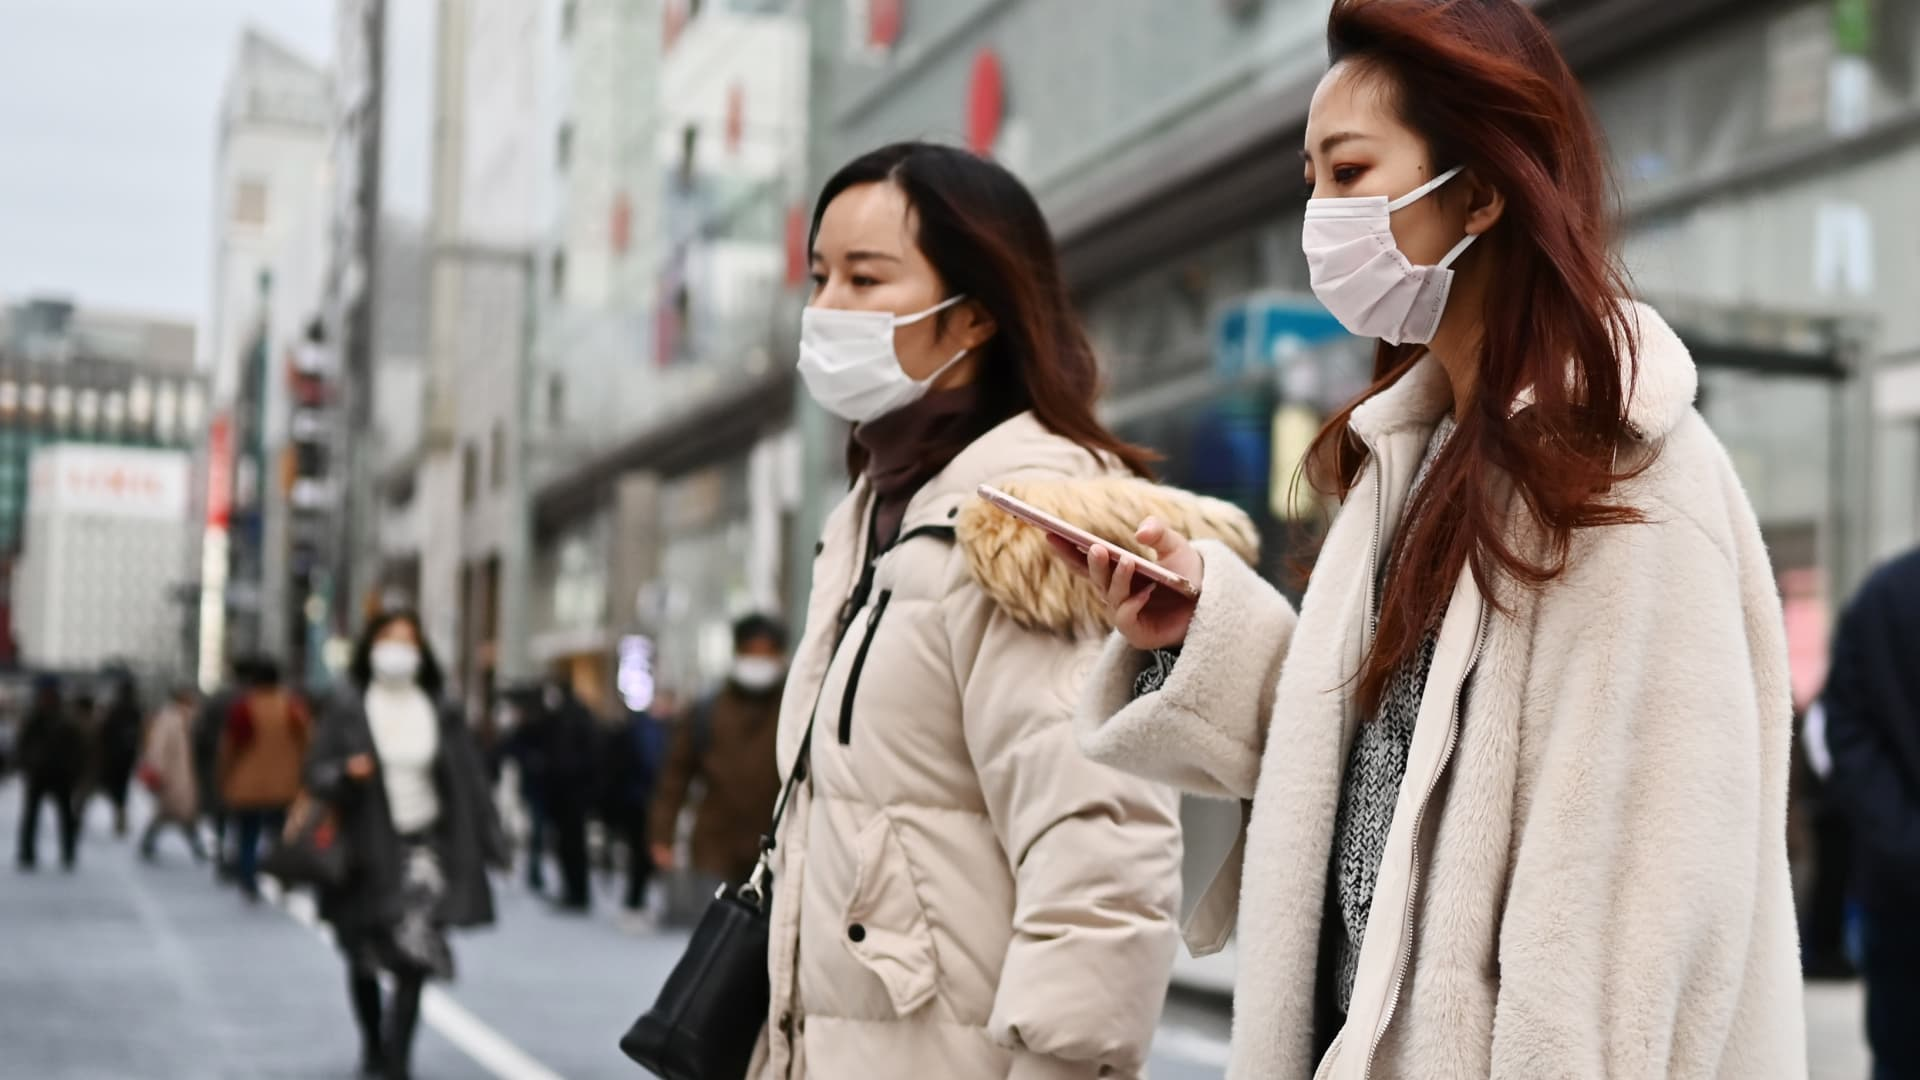 Pedestrians wearing protective masks to help stop the spread of a deadly virus which began in the Chinese city of Wuhan, walk on a street in Tokyo's Ginza area on January 25, 2020.